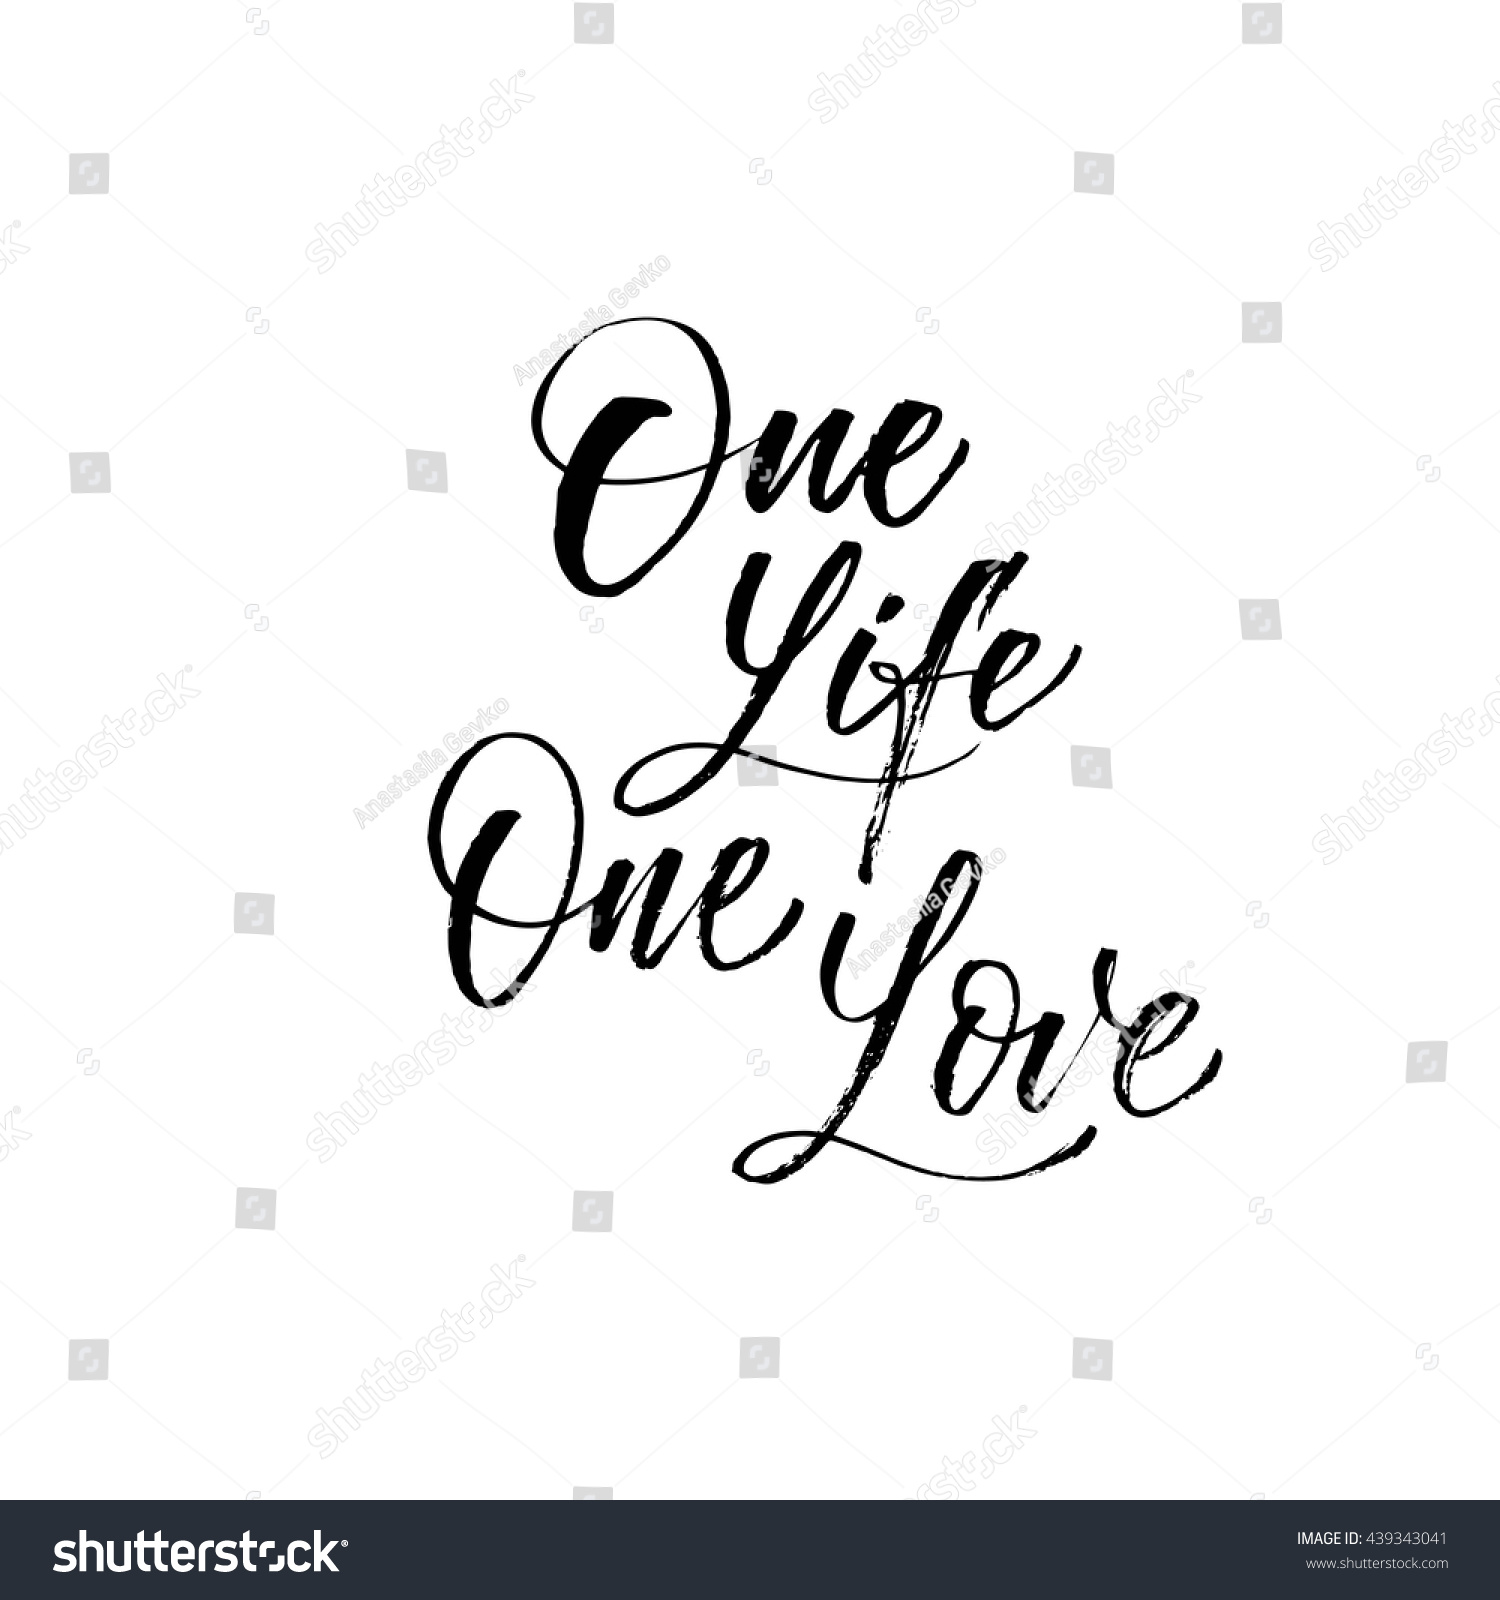 e life one love card Hand drawn inspirational quote Ink illustration Modern